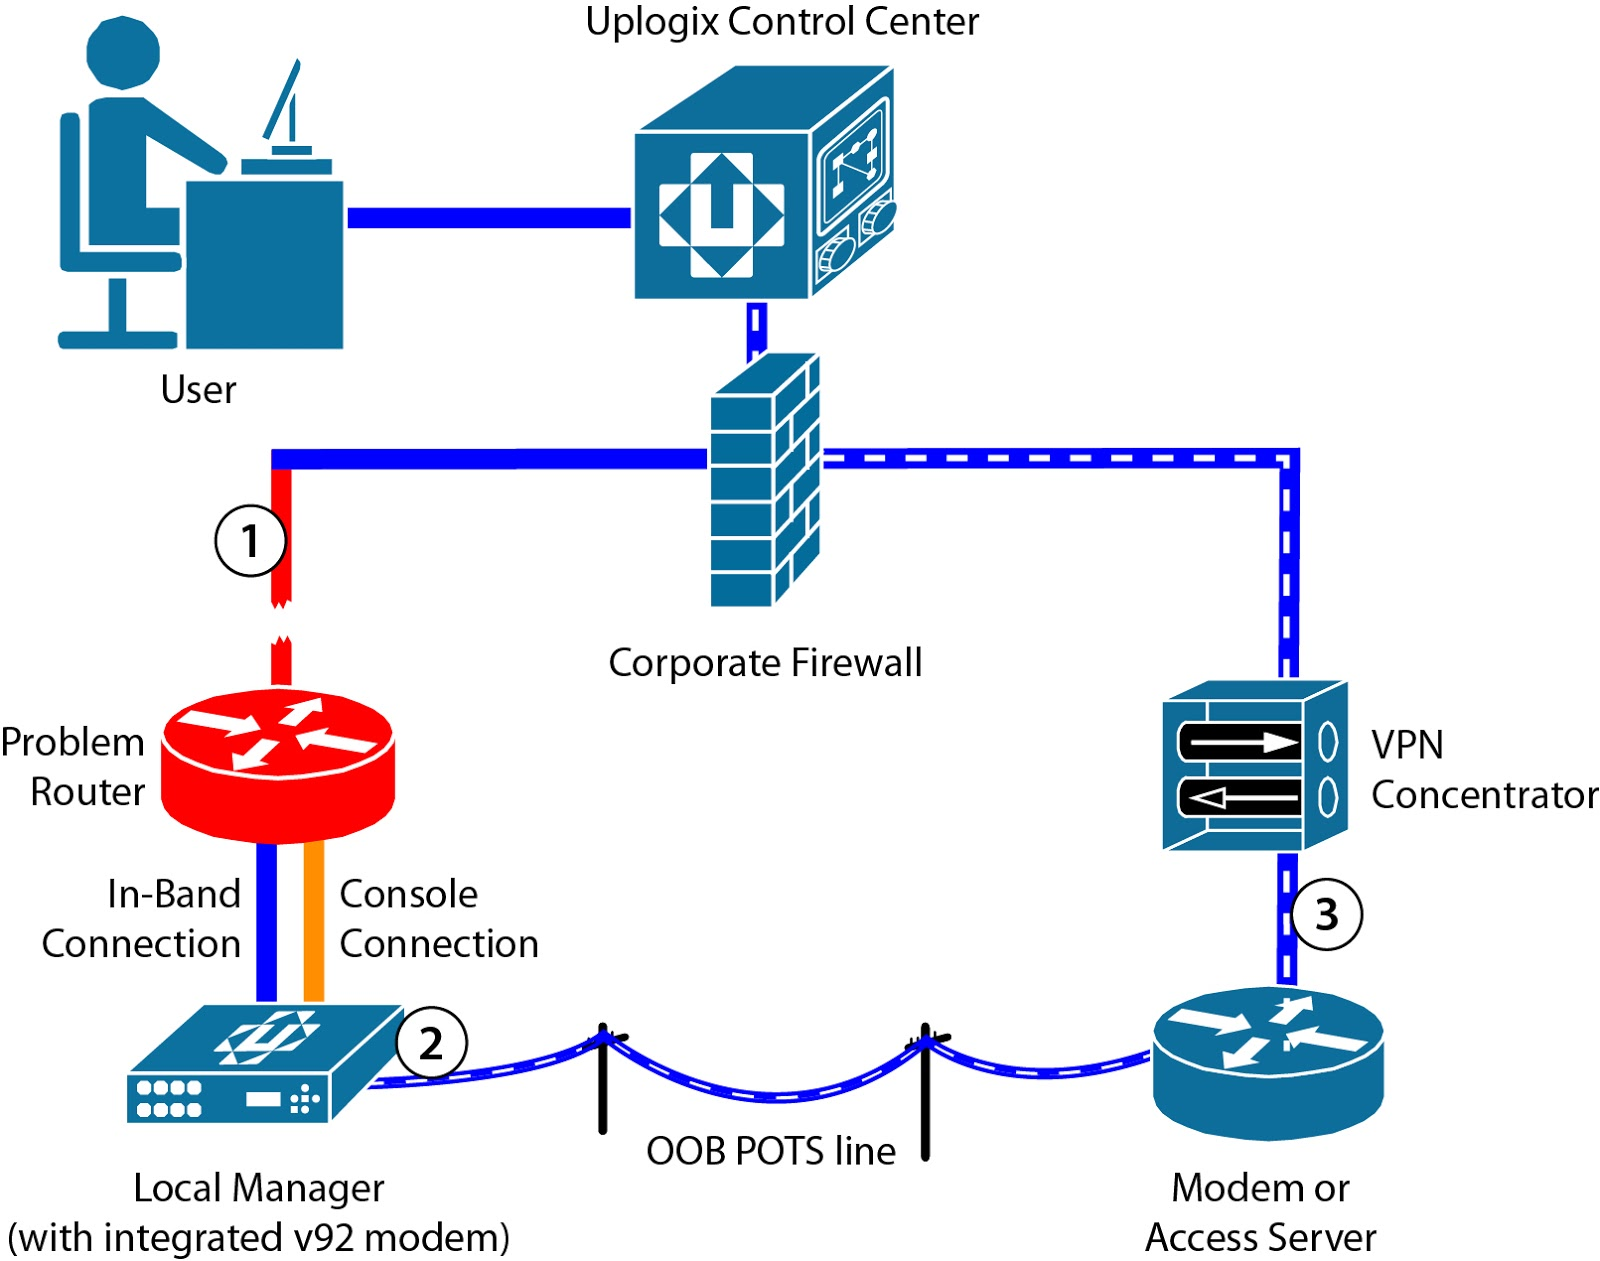 Pots Telephone Wiring Diagram Vortec Firing Order Uplogix Local Management Blog Staying Connected Out Of